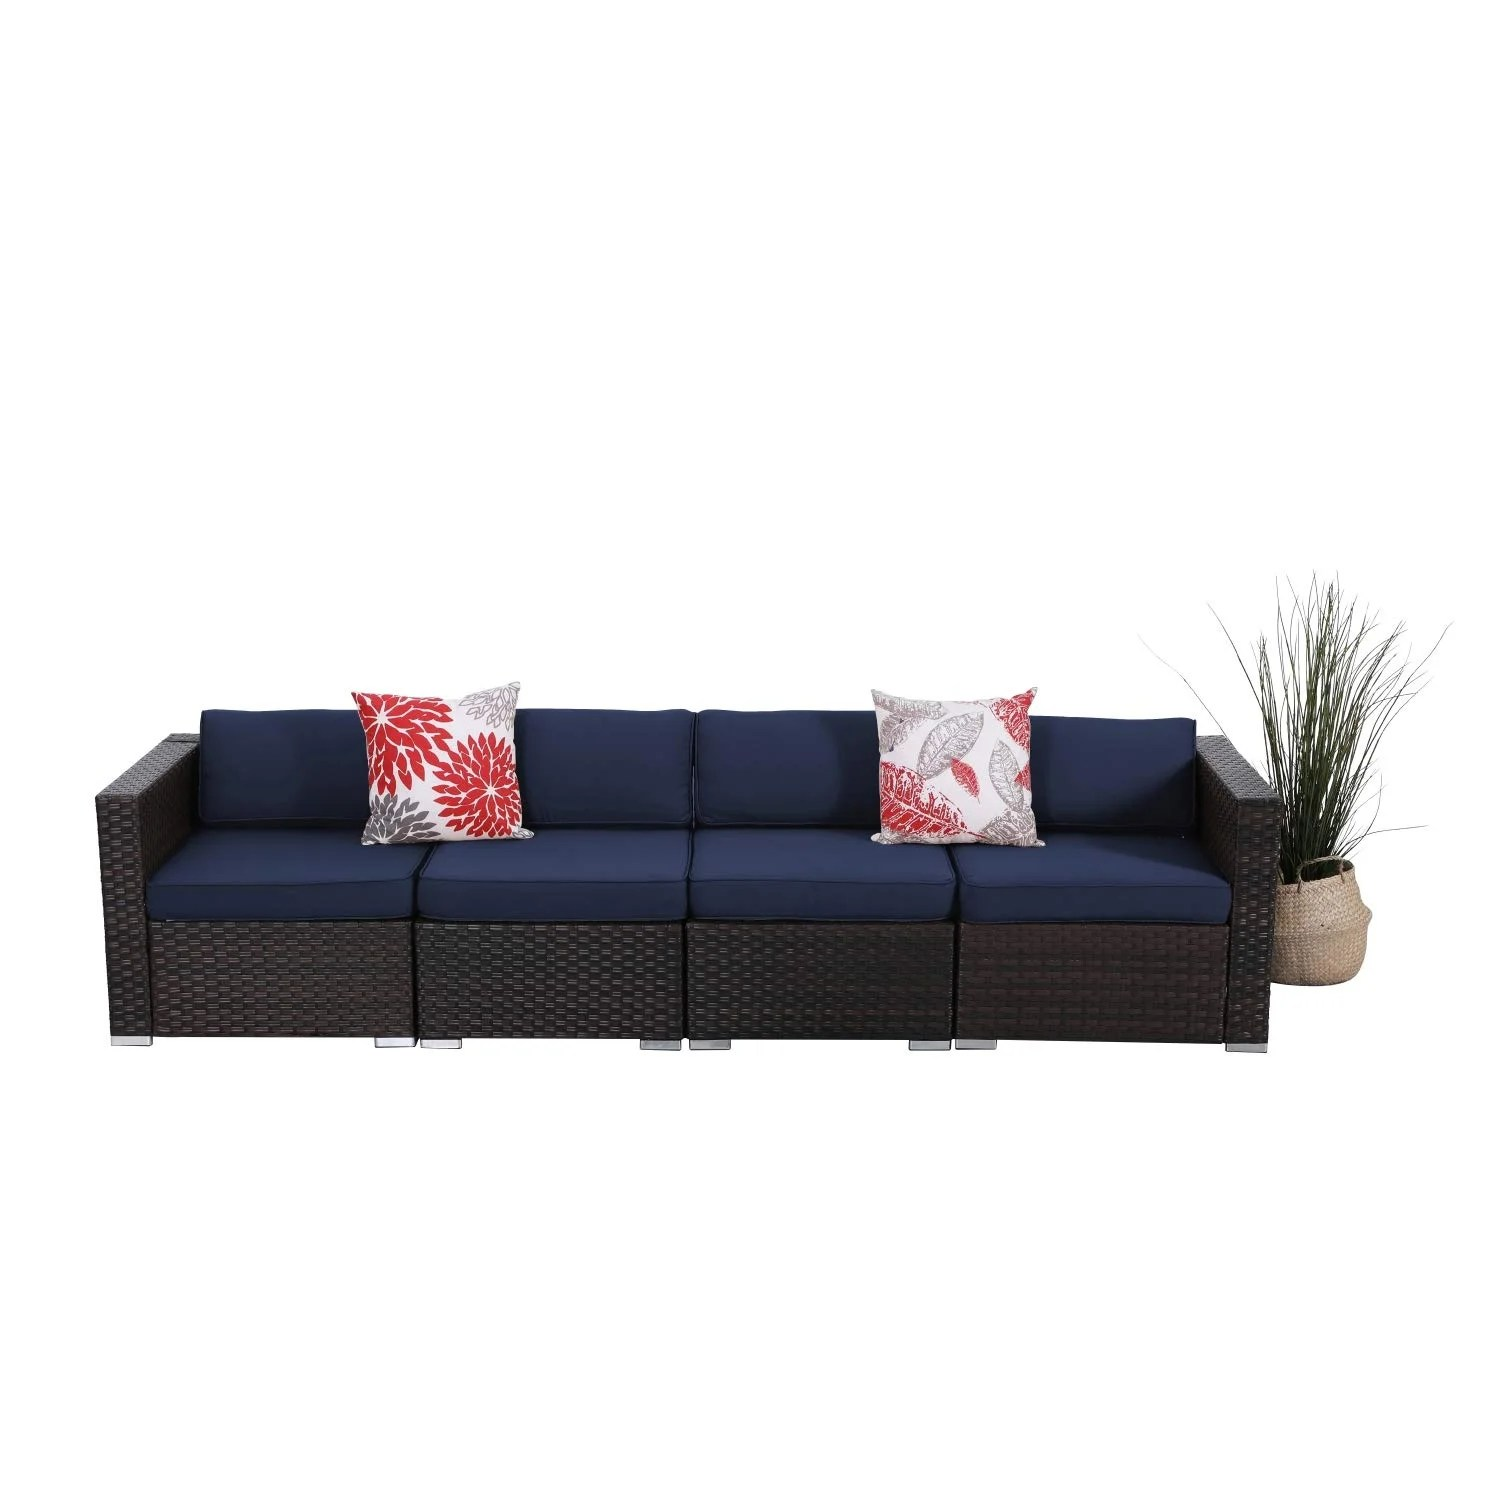 phi villa 4 piece patio outdoor furniture sectional sofa set all weather wicker rattan with navy blue cushions